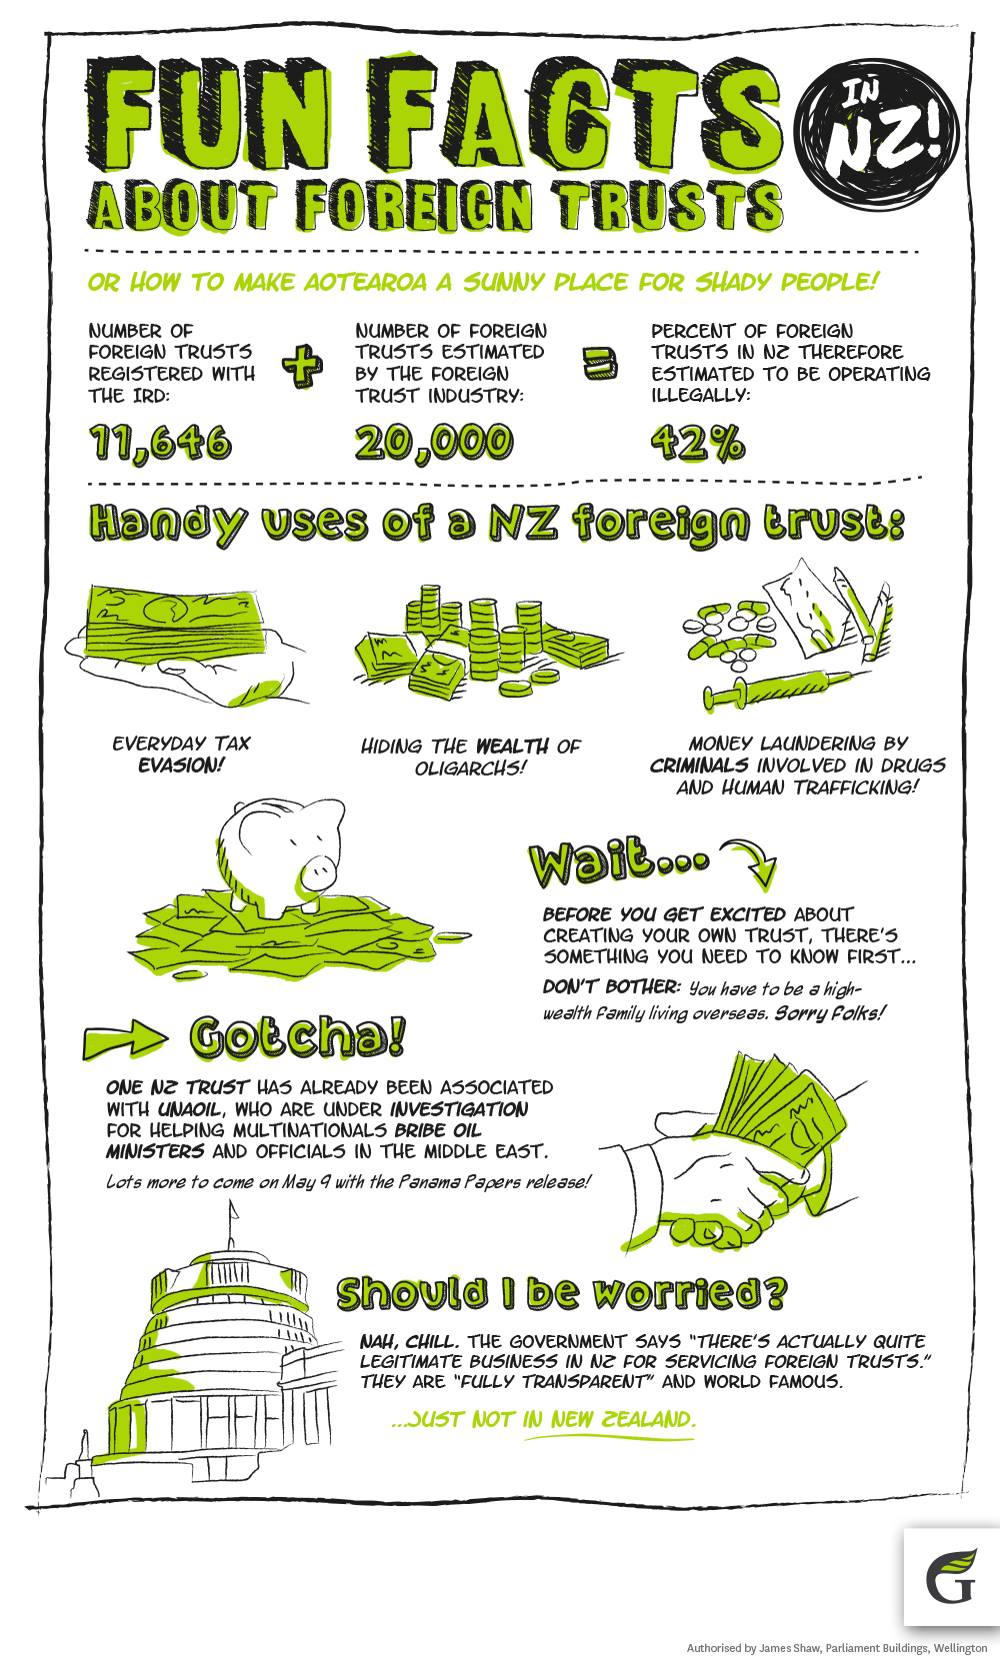 Fun facts about foreign trusts